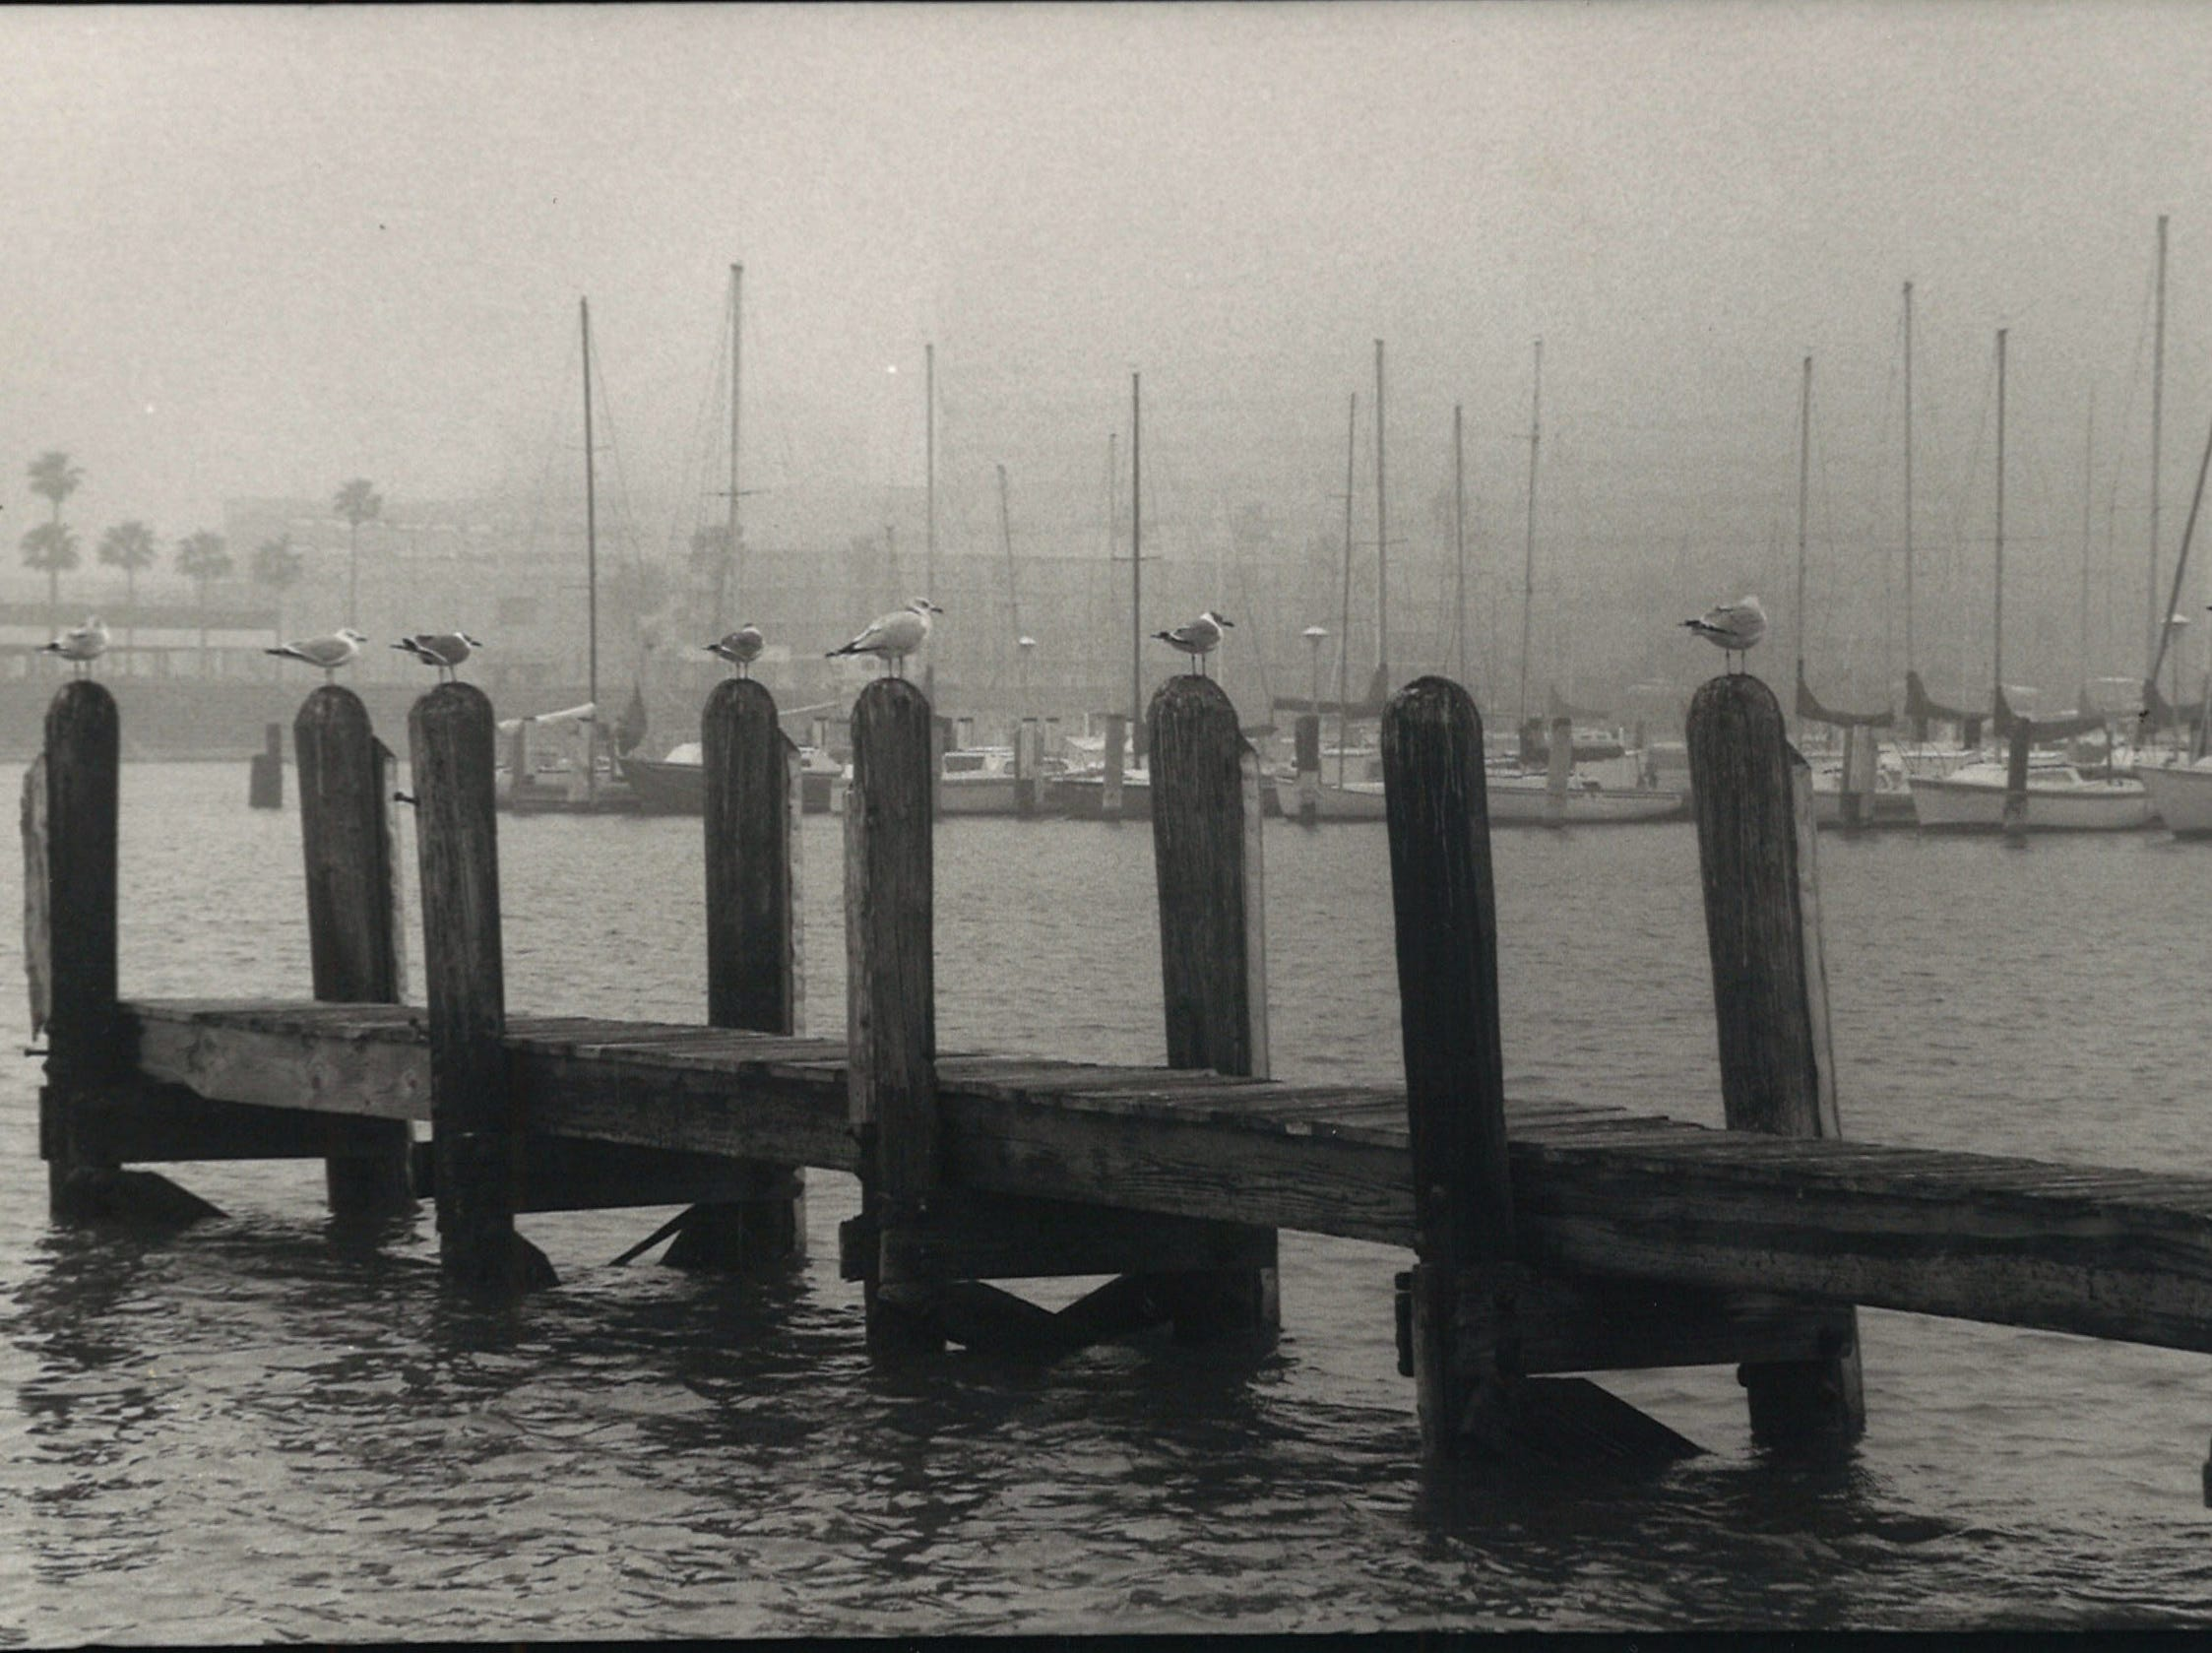 Seagulls sit on the dock pilings in the Corpus Christi Marina on a foggy day in December 1984.